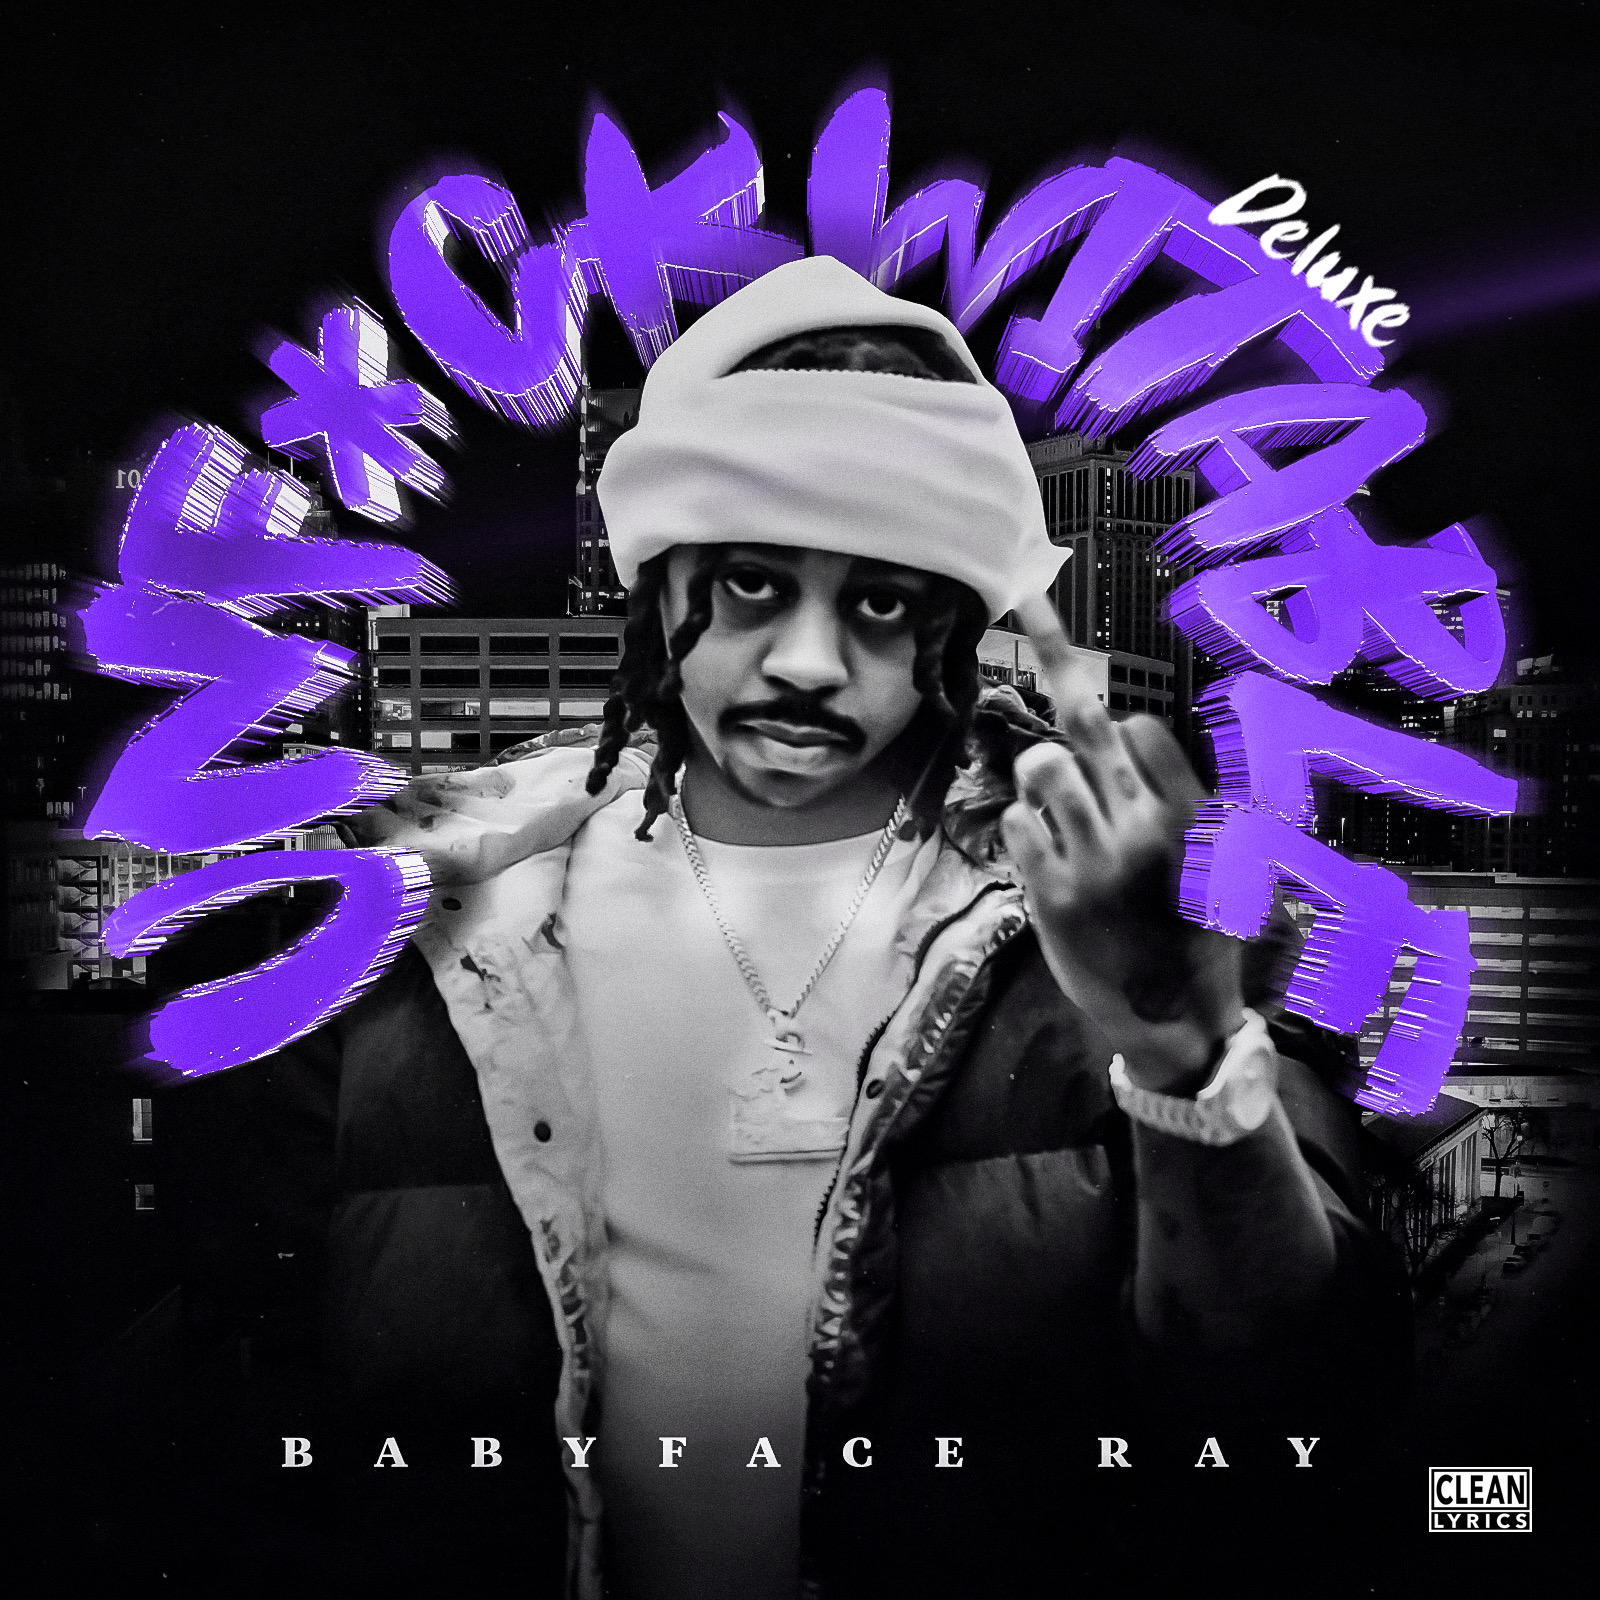 Art for Paperwork Party (Remix) (Dirty) by Babyface Ray ft Jack Harlow